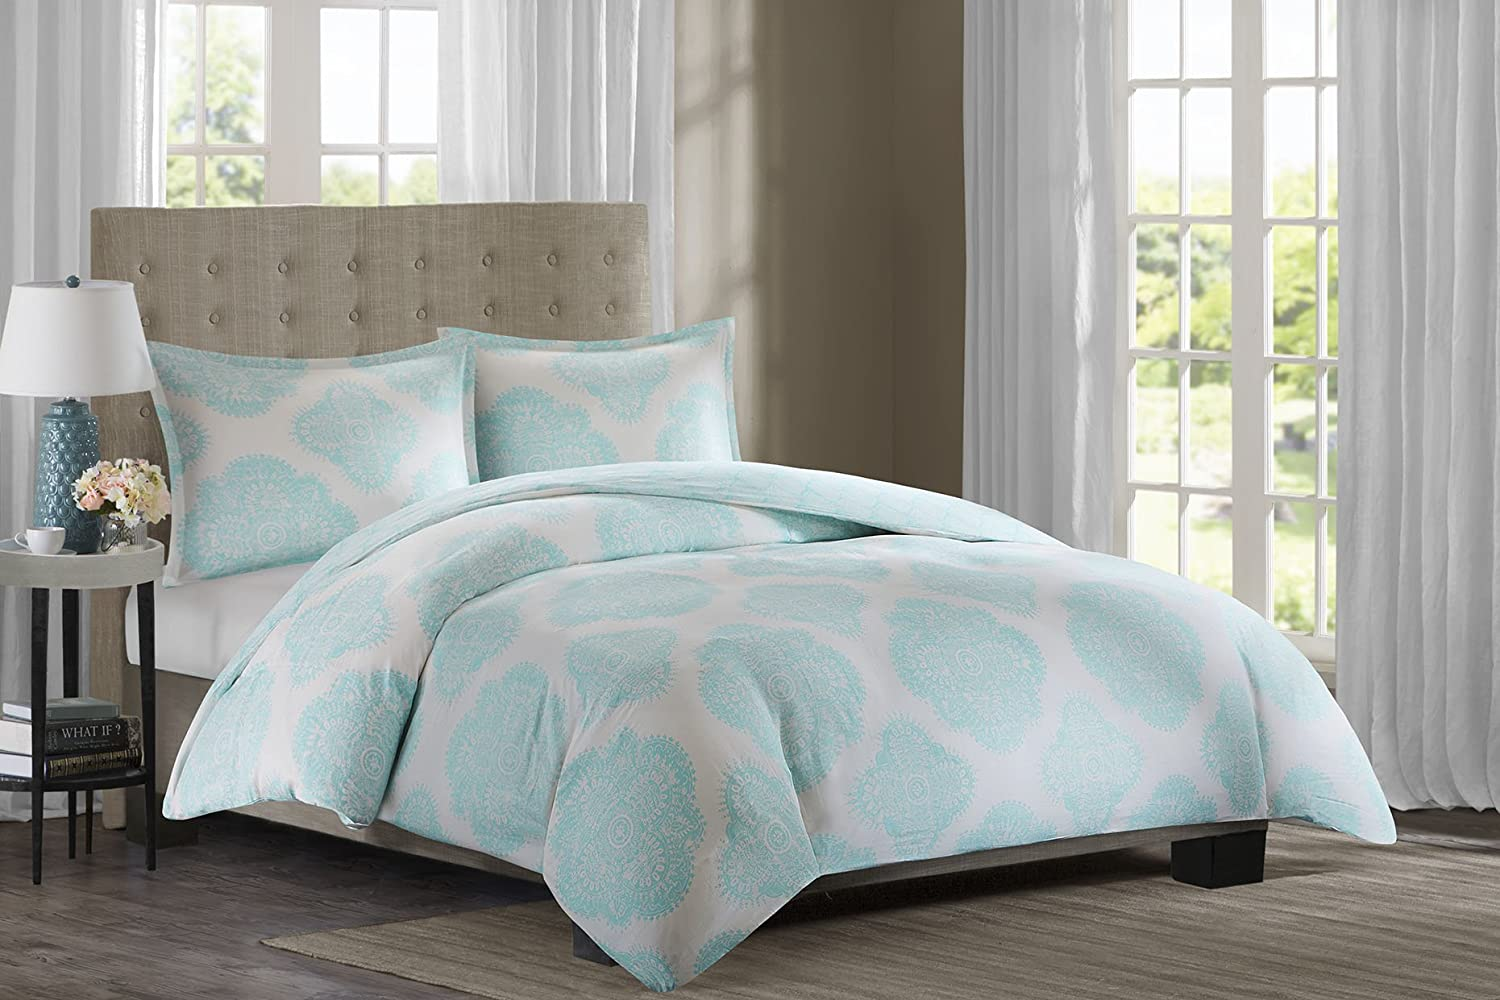 Amazoncom Echo Design Bindi Duvet Cover Set King Aqua Home